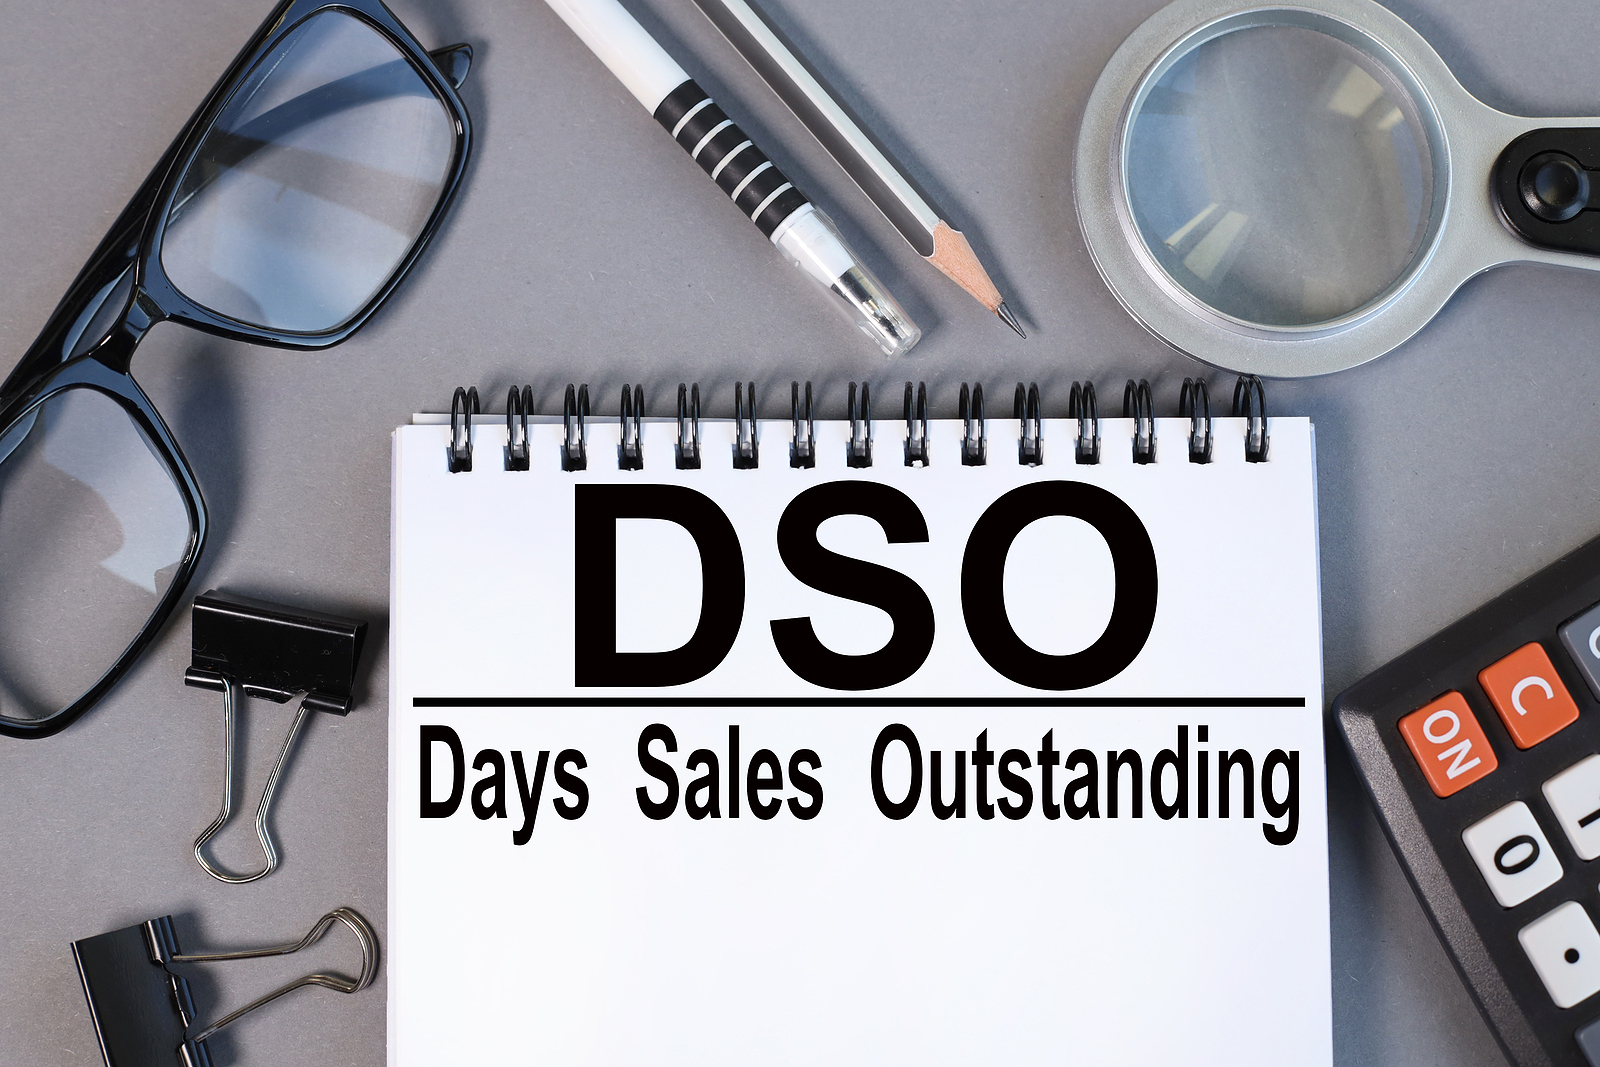 DSO Has Its Merits, But Not for Collections Performance